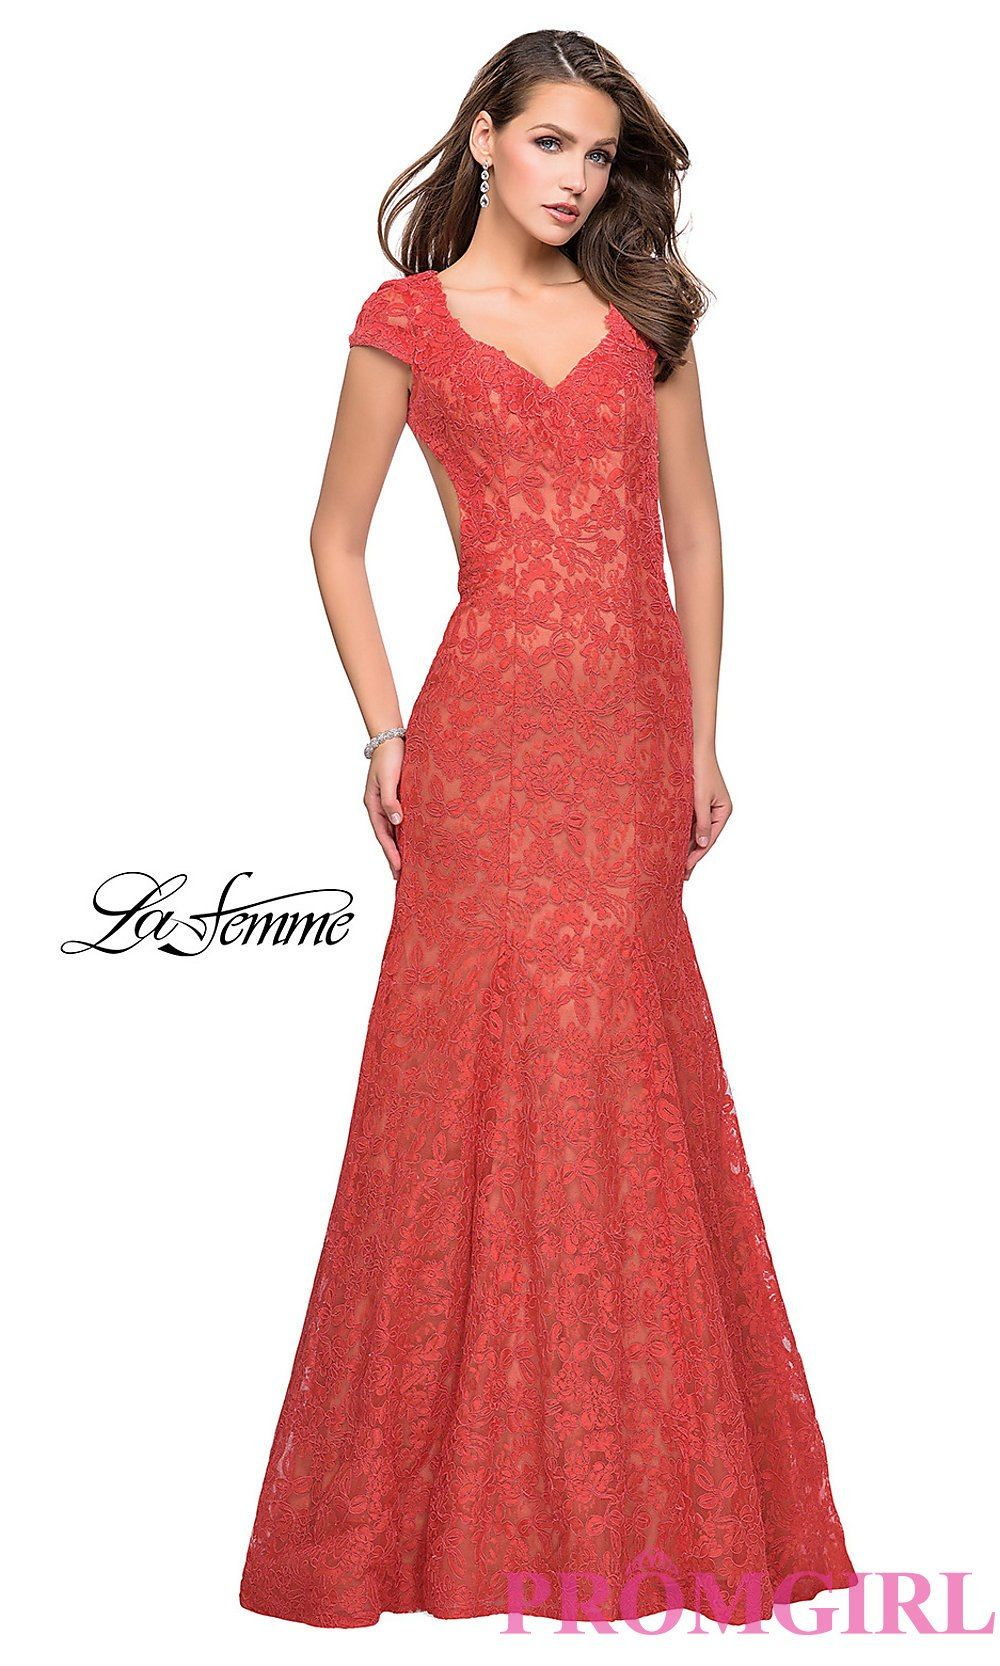 Lace mermaid gown la femme long prom dresses promgirl african